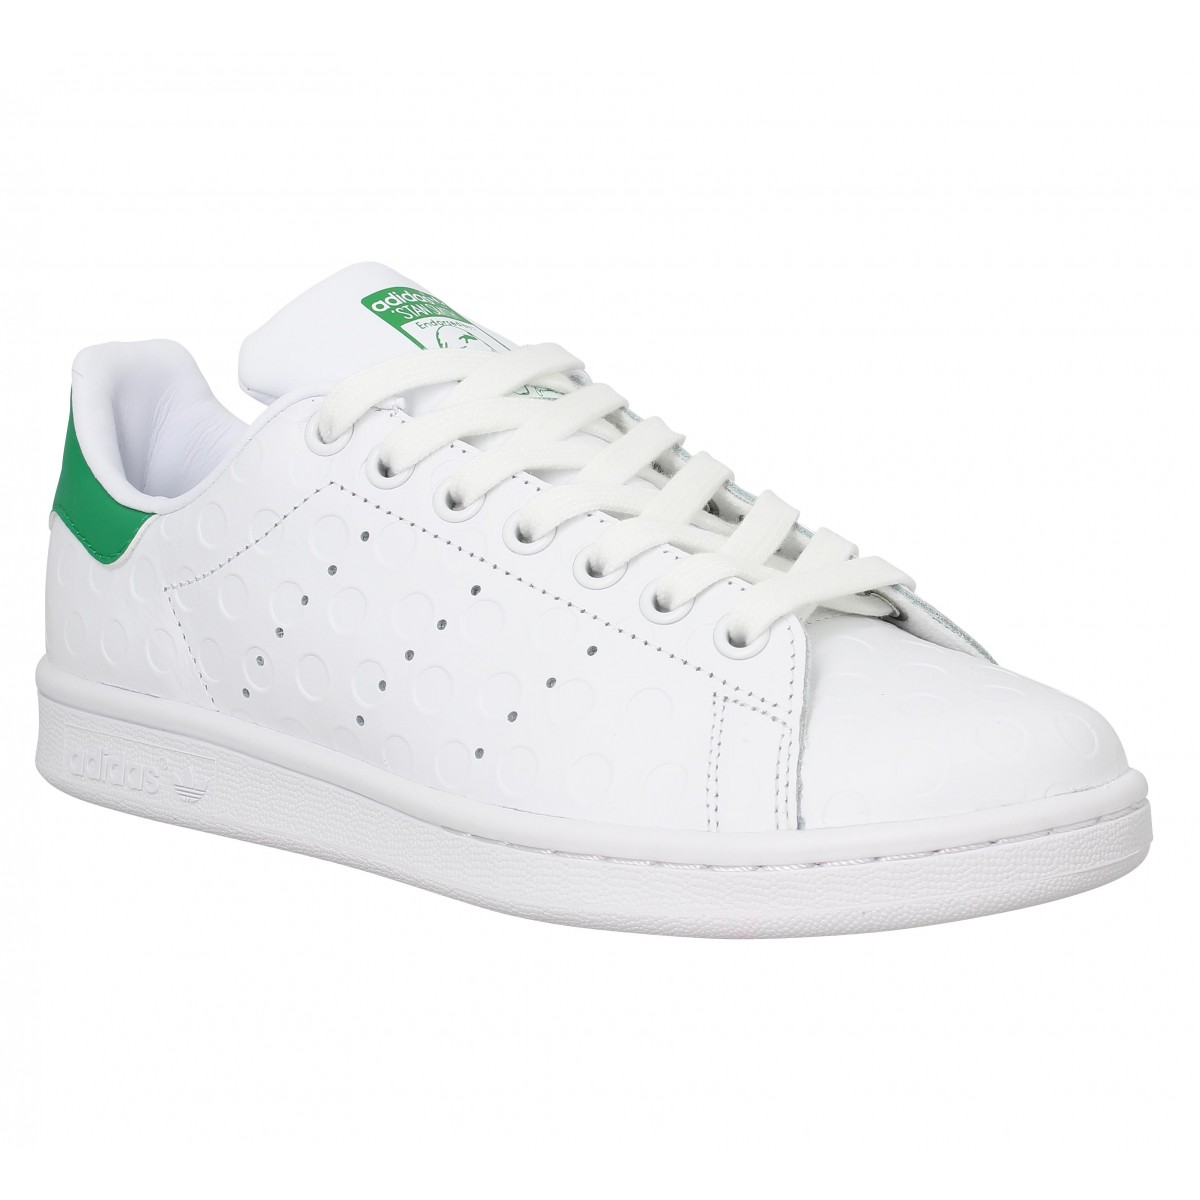 Baskets ADIDAS Stan Smith cuir grave Blanc Vert